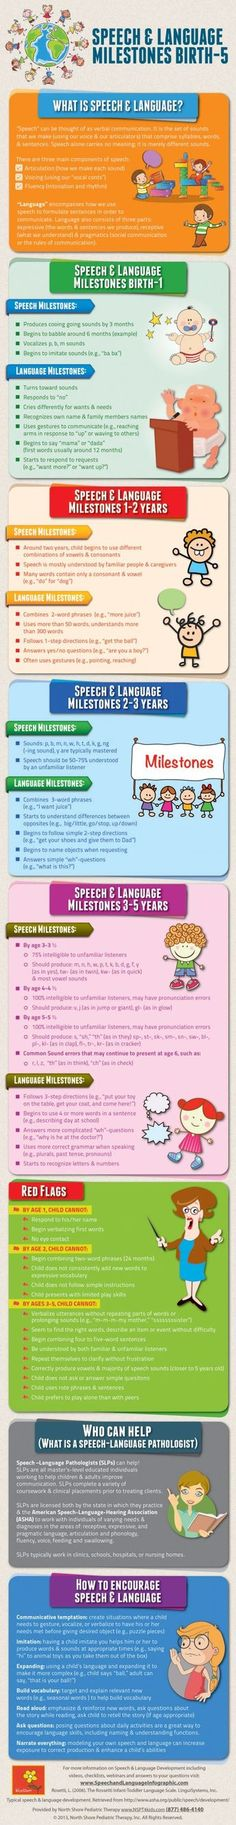 56 best toddler learning images on Pinterest in 2018 | Kids math ...